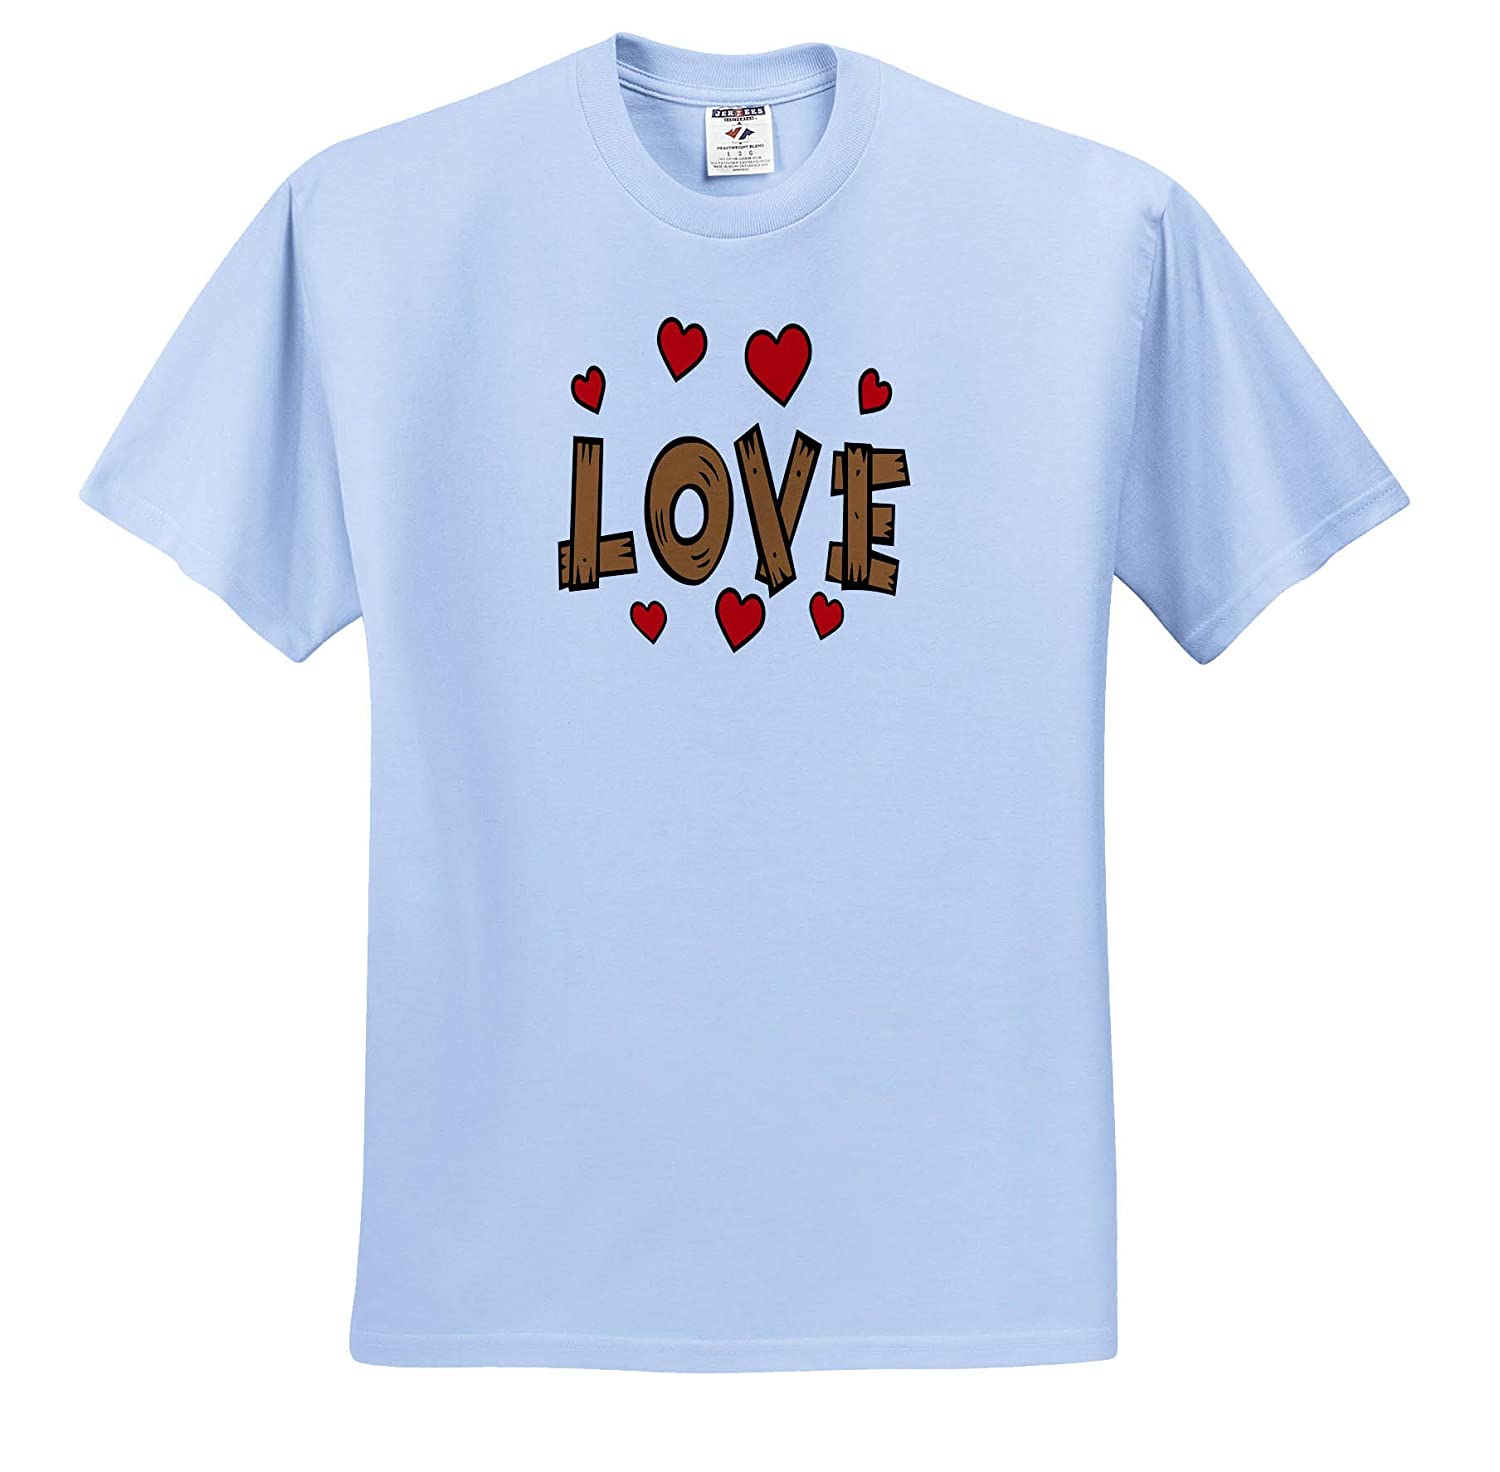 3dramm Holidays and Typography 3dRose AmansMall Winter Wood Image Love and Red Hearts Valentine Typography T-Shirts